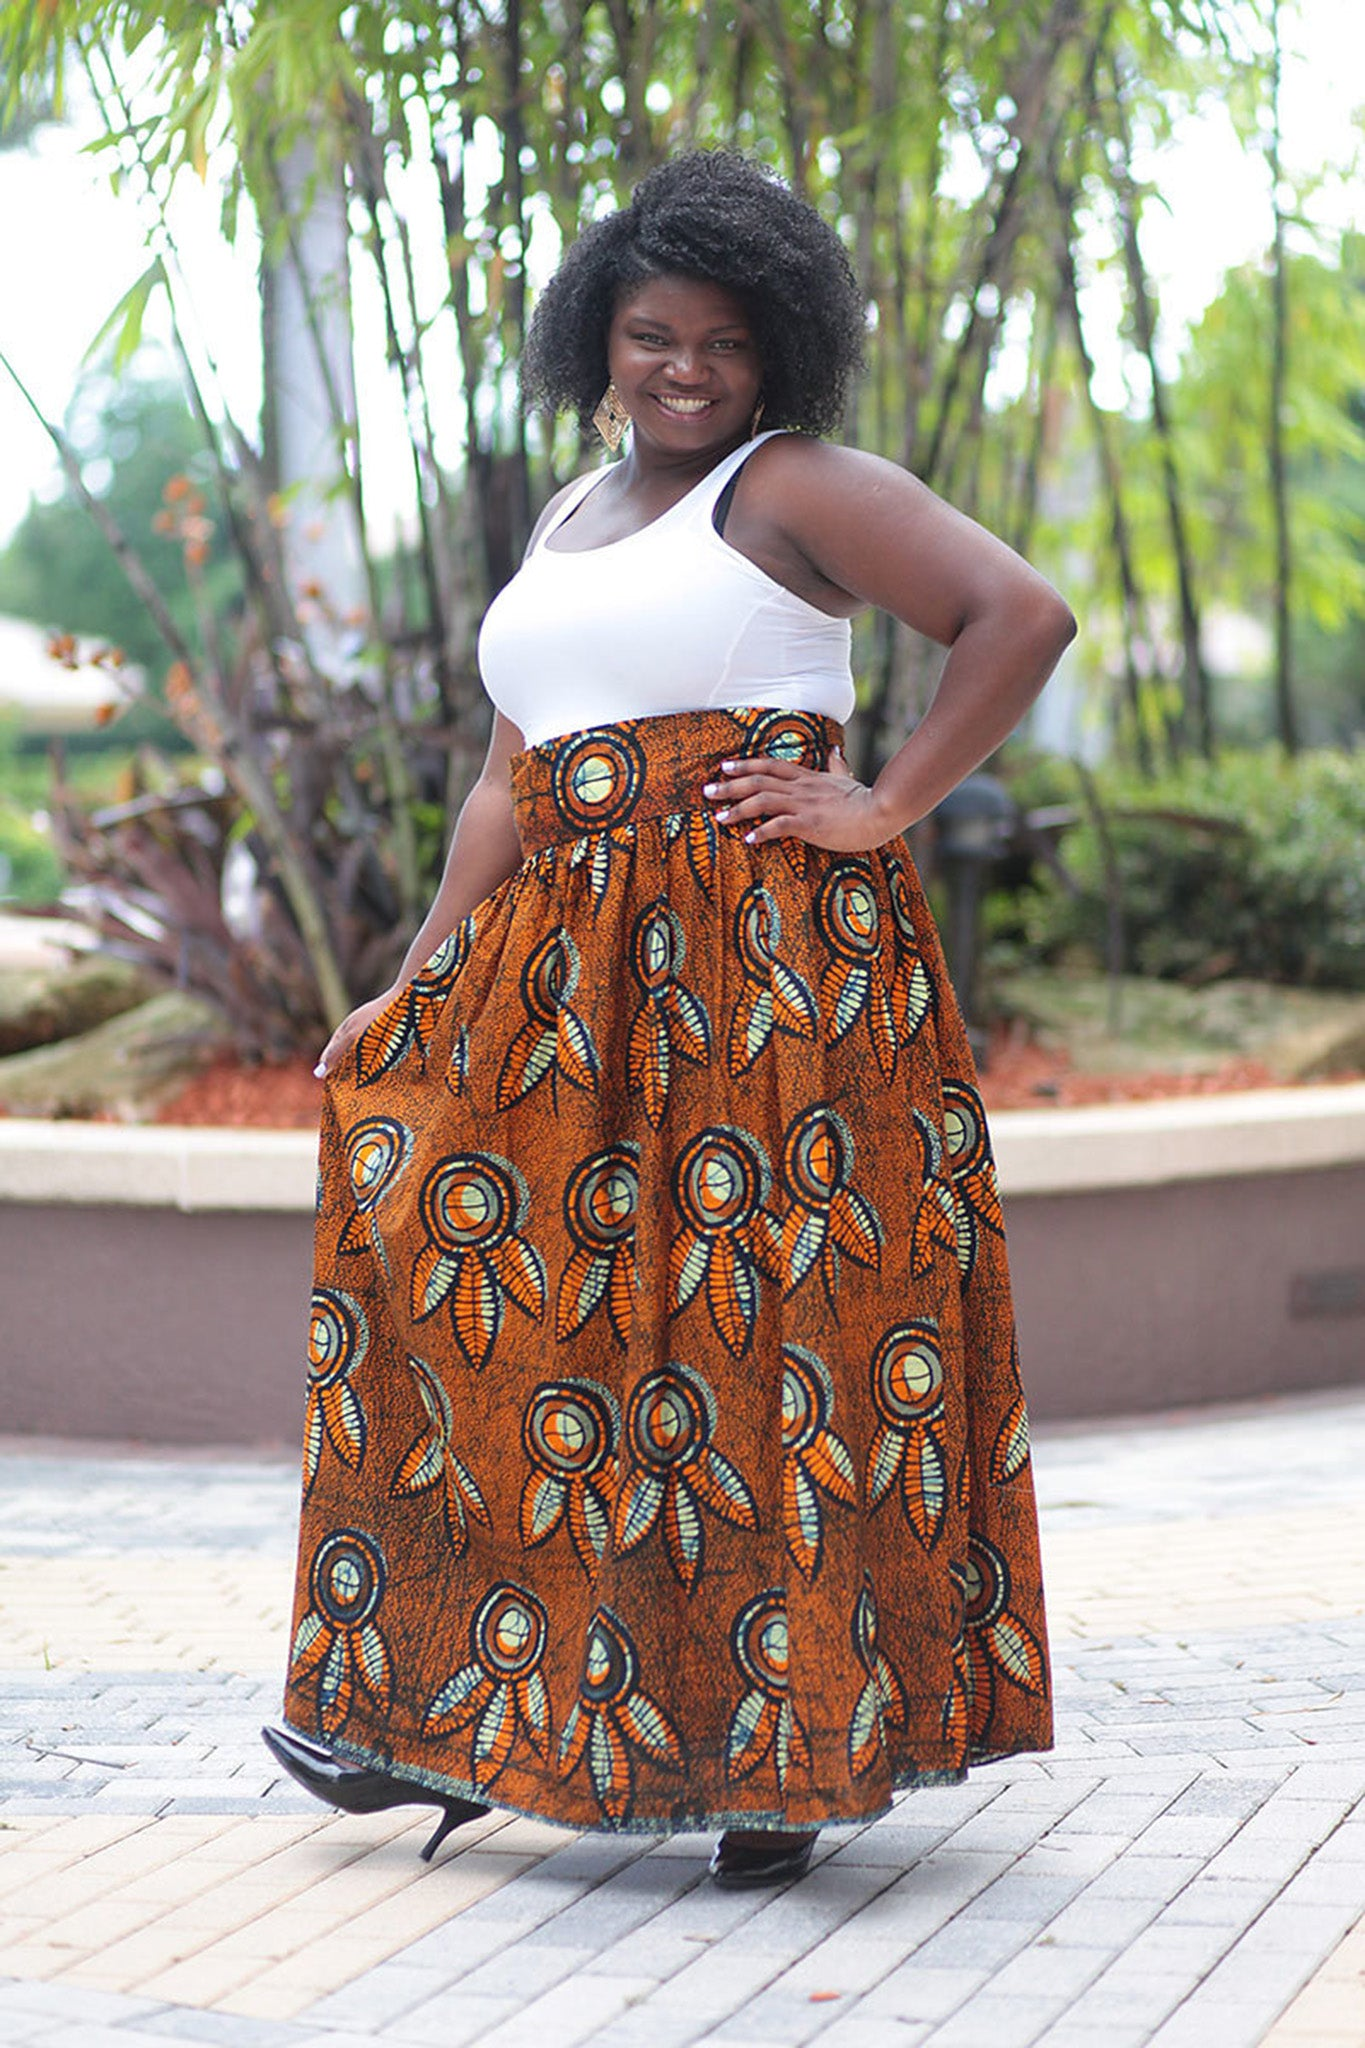 African Print Maxi - Orange/Black Floral Print - Africas Closet